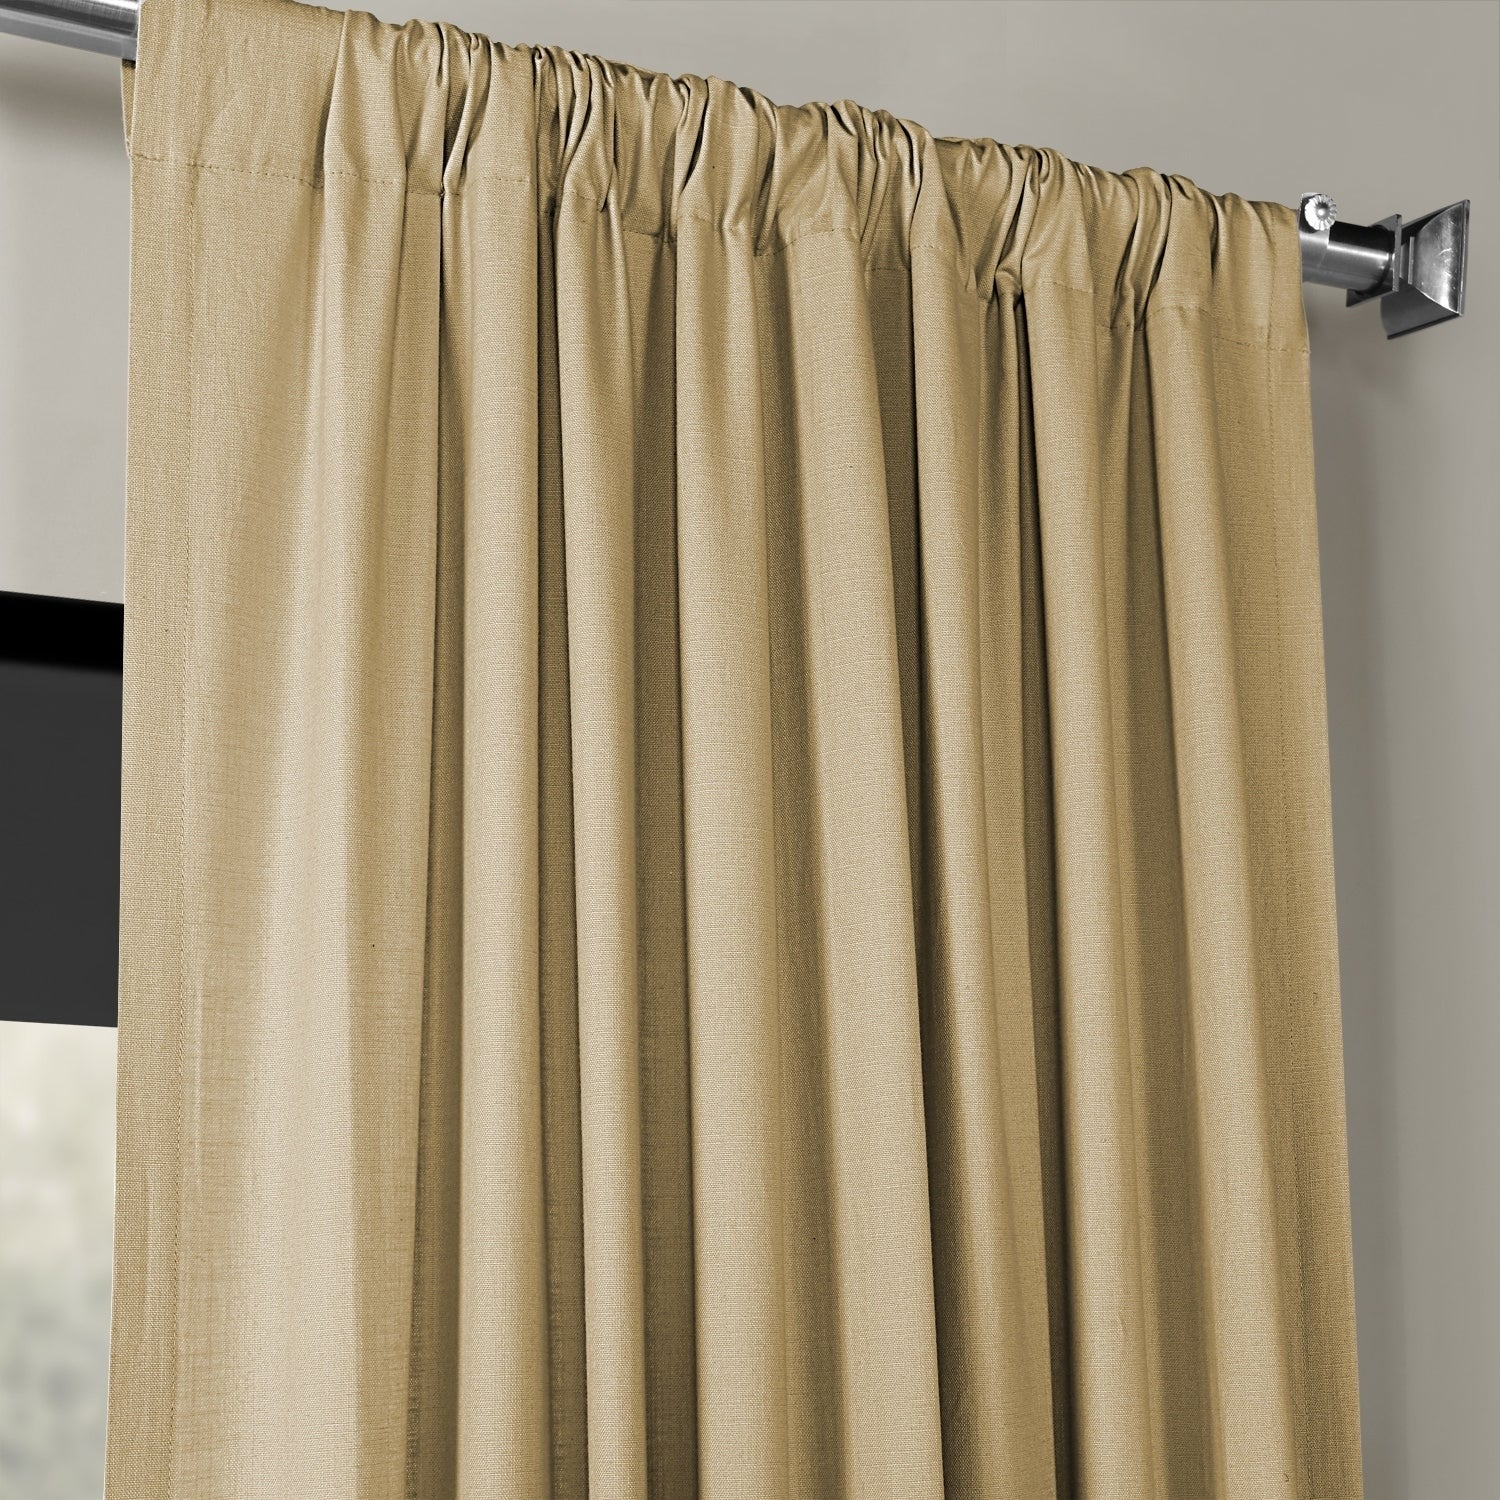 Exclusive Fabrics Solid Country Cotton Linen Weave Curtain Panel In Solid Country Cotton Linen Weave Curtain Panels (View 7 of 30)